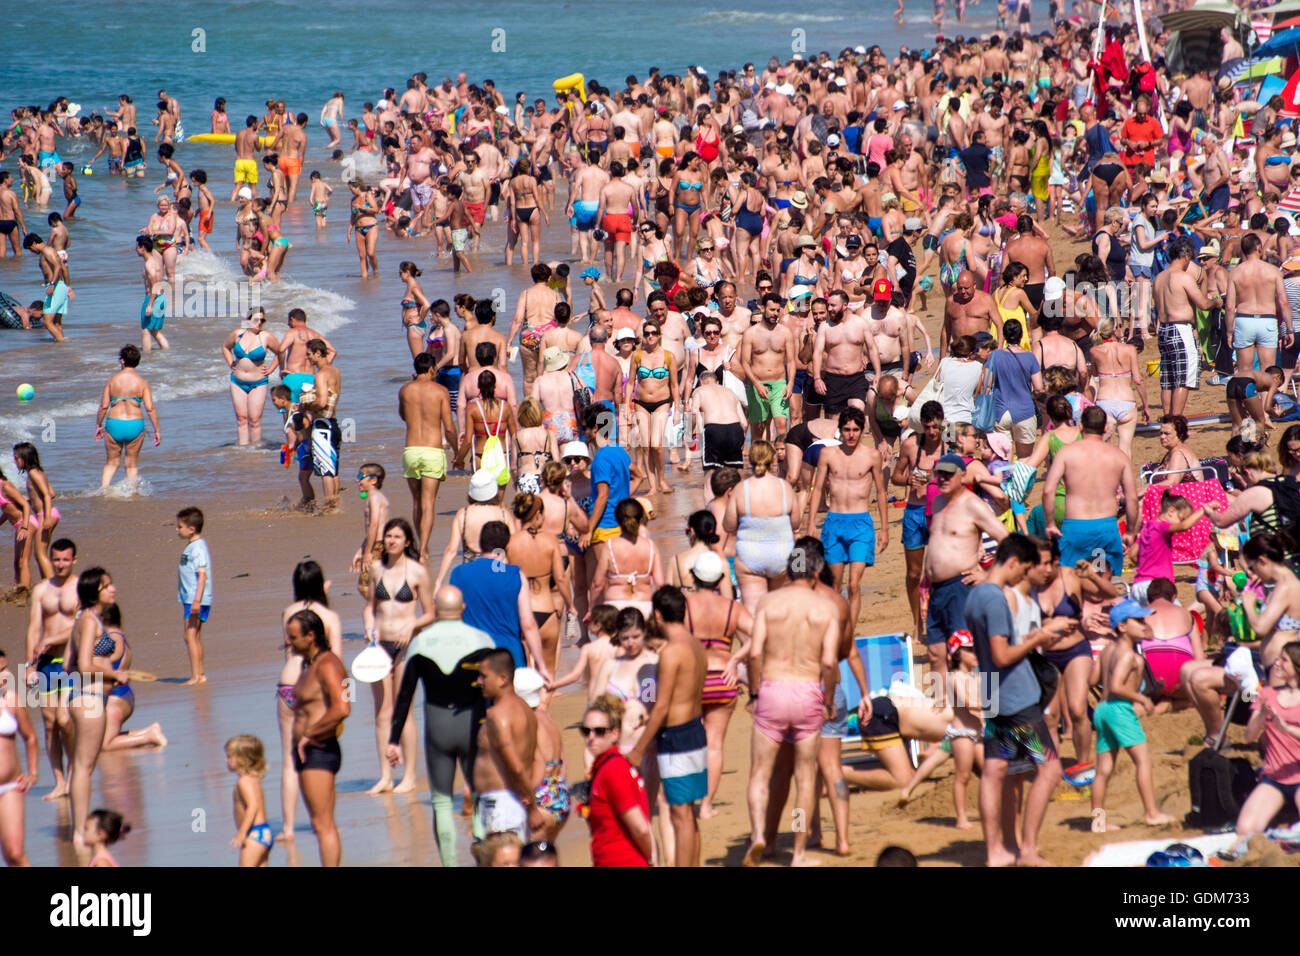 Gijon, Spain. 18th July, 2016. Thousands of people take advantage of the hottest days of the year to go to Saint - Stock Image